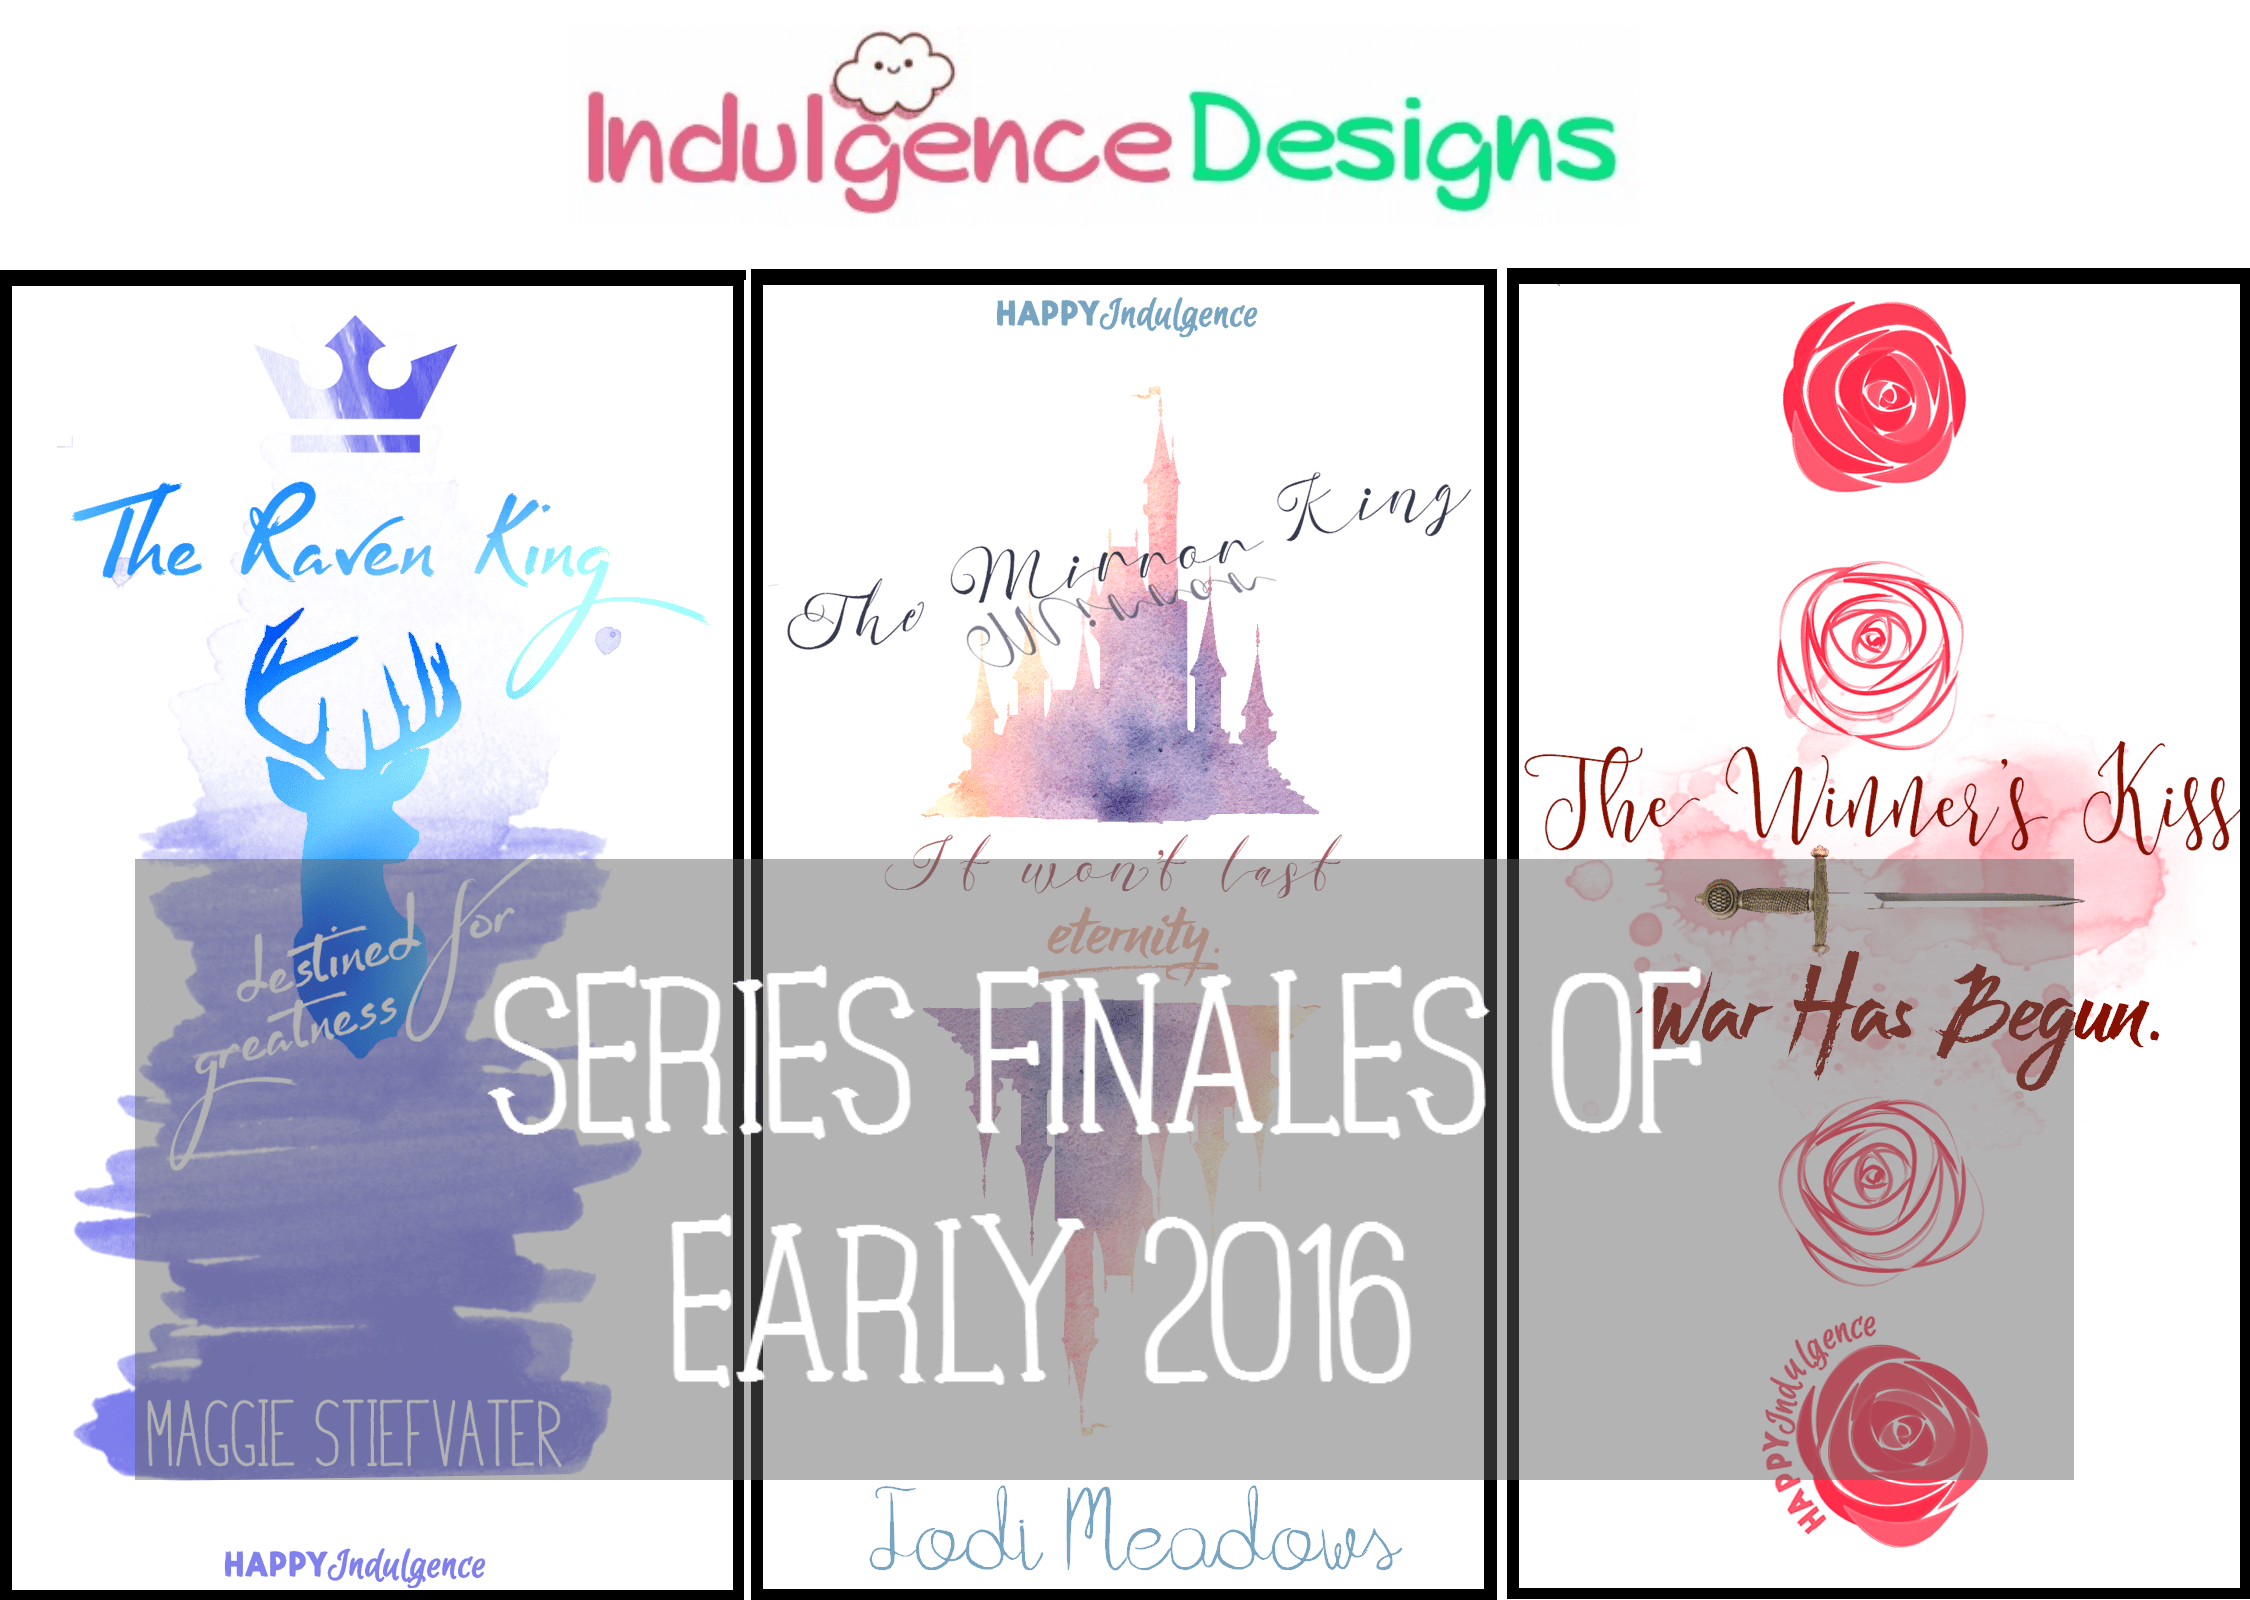 Indulgence Designs #2: Series Finales of Early 2016